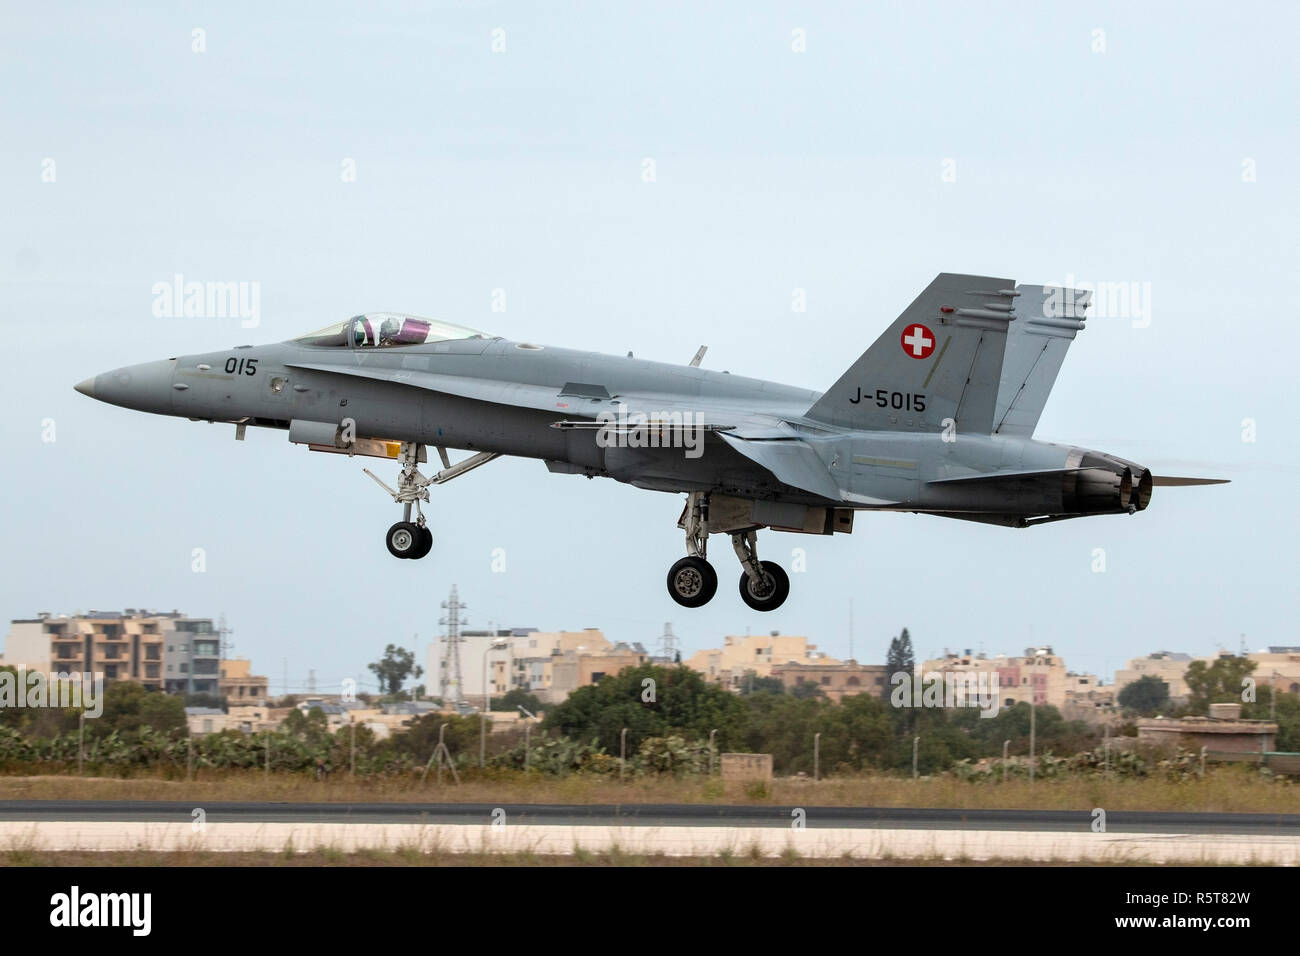 Swiss Air Force McDonnell Douglas F/A-18C Hornet participating in the Malta Airshow 2014. - Stock Image